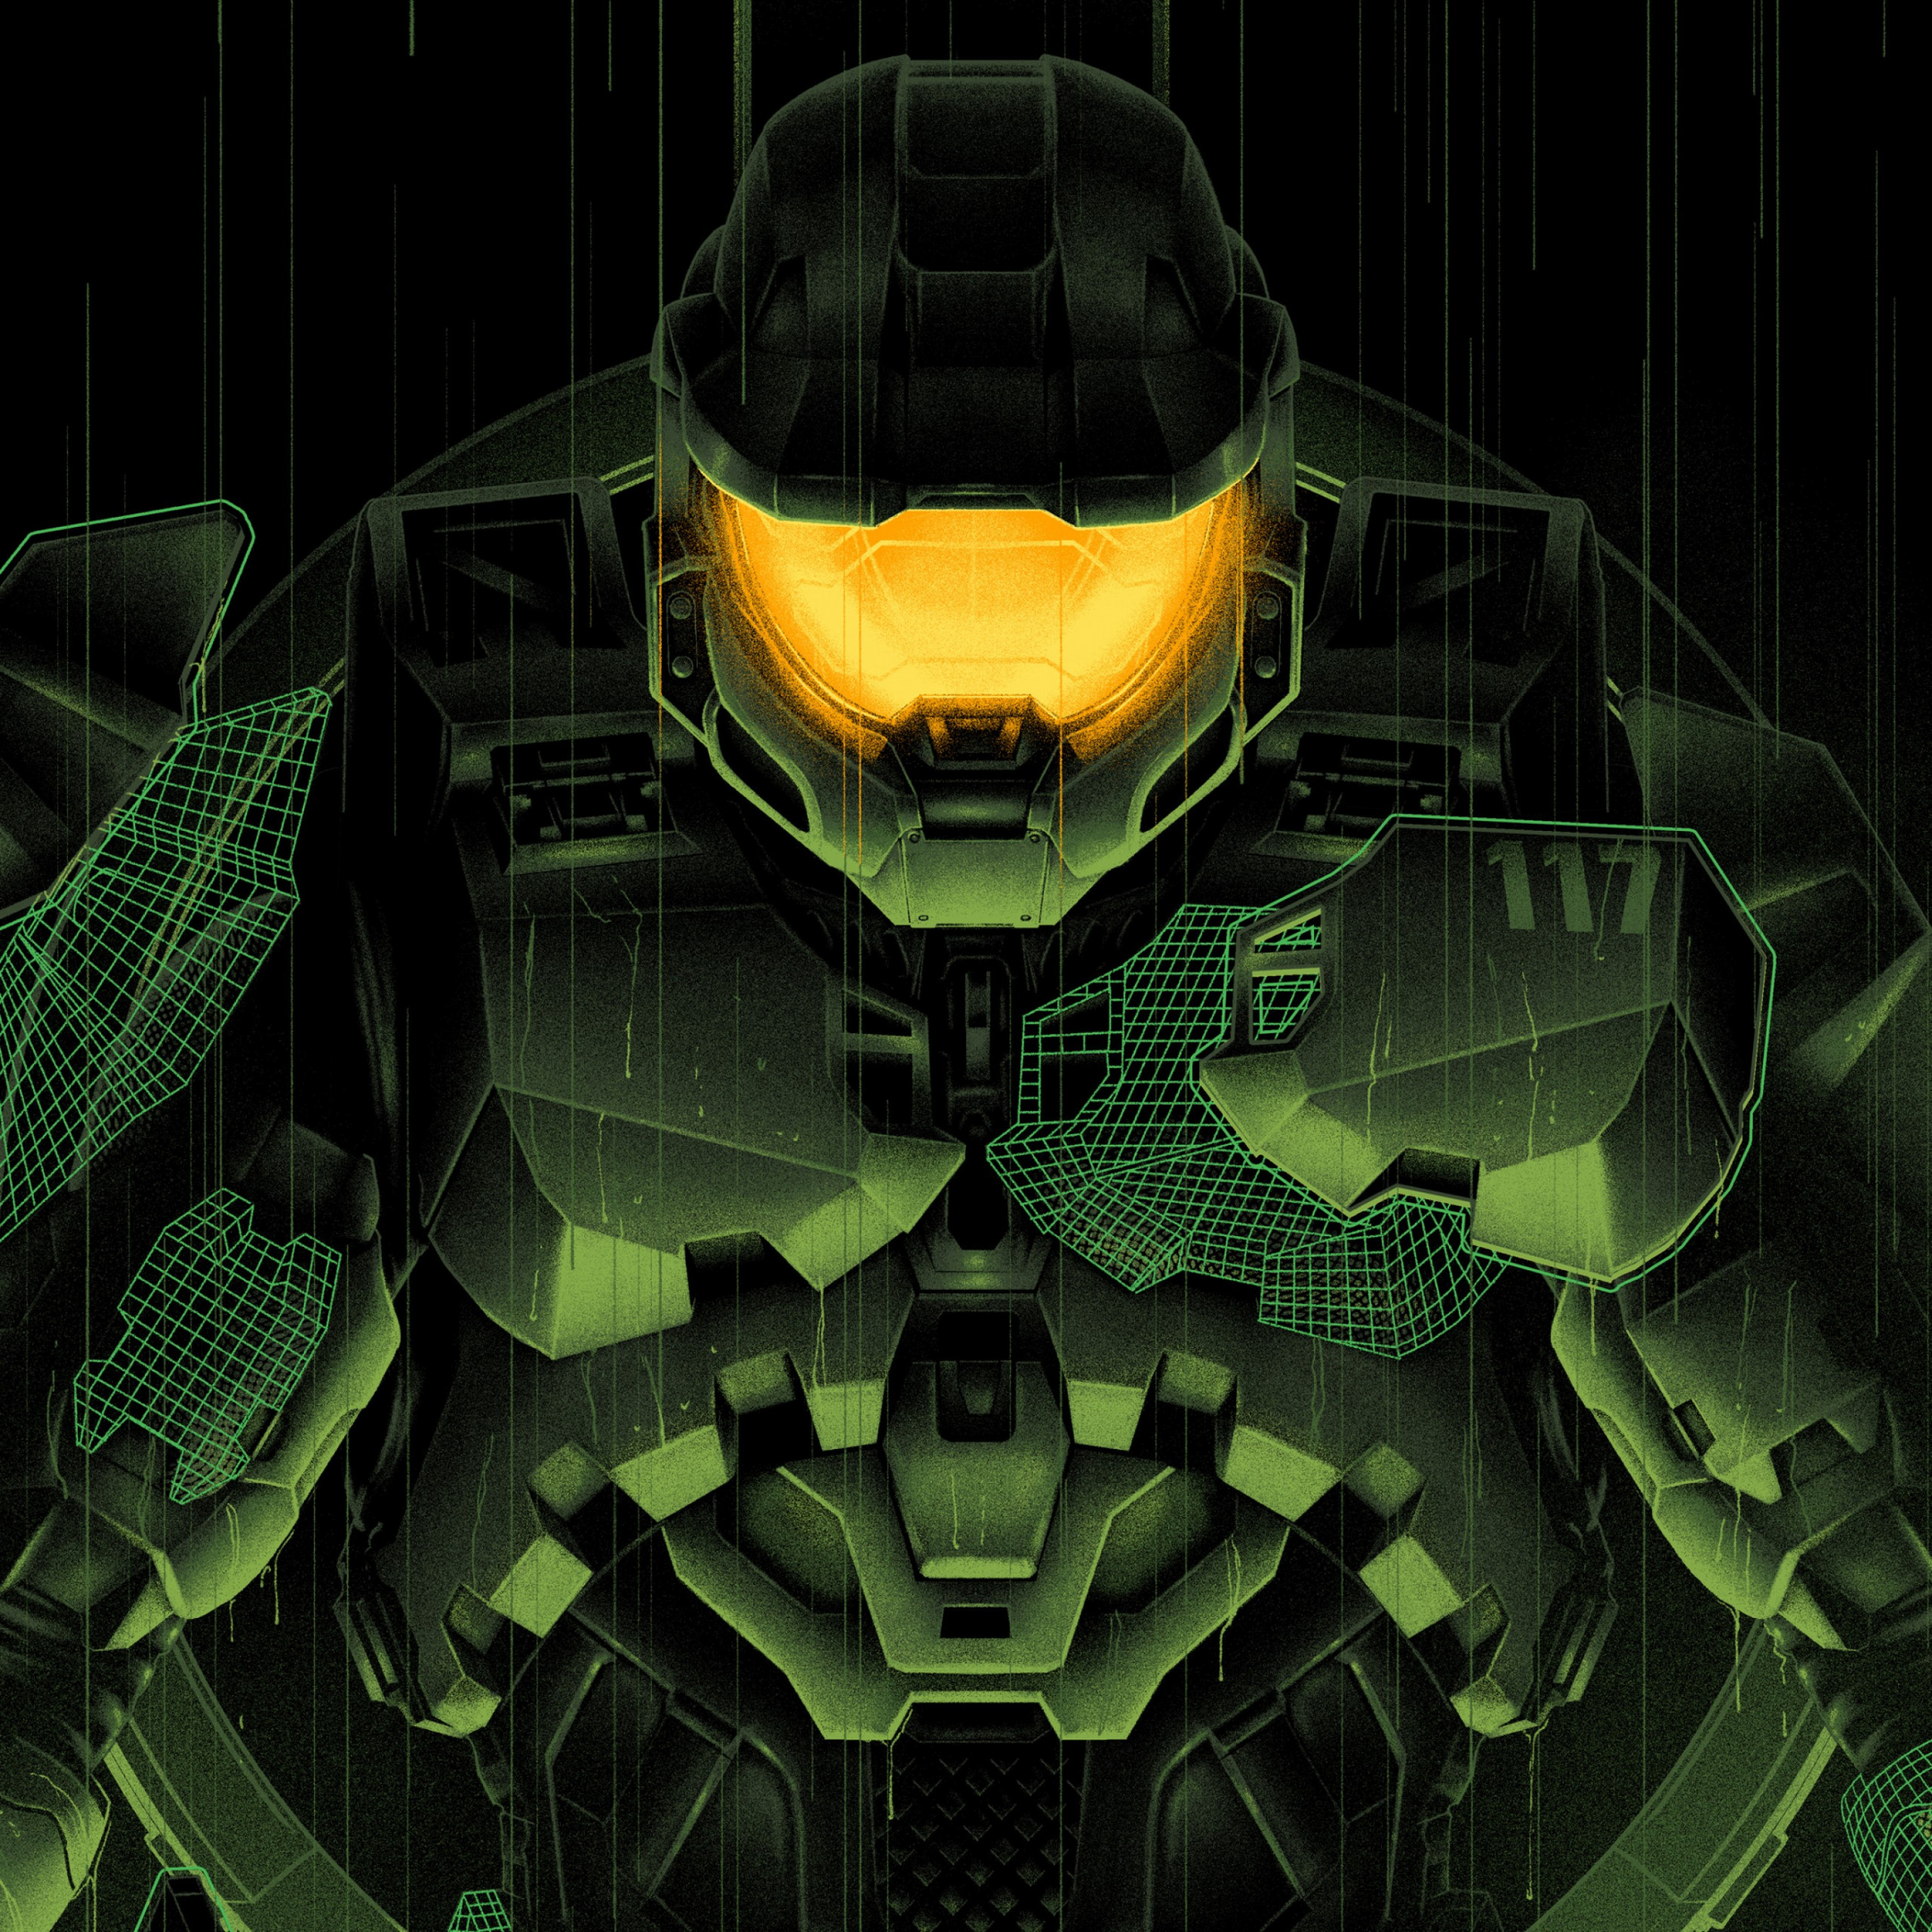 master chief halo infinite artwork 2732x2732 2633